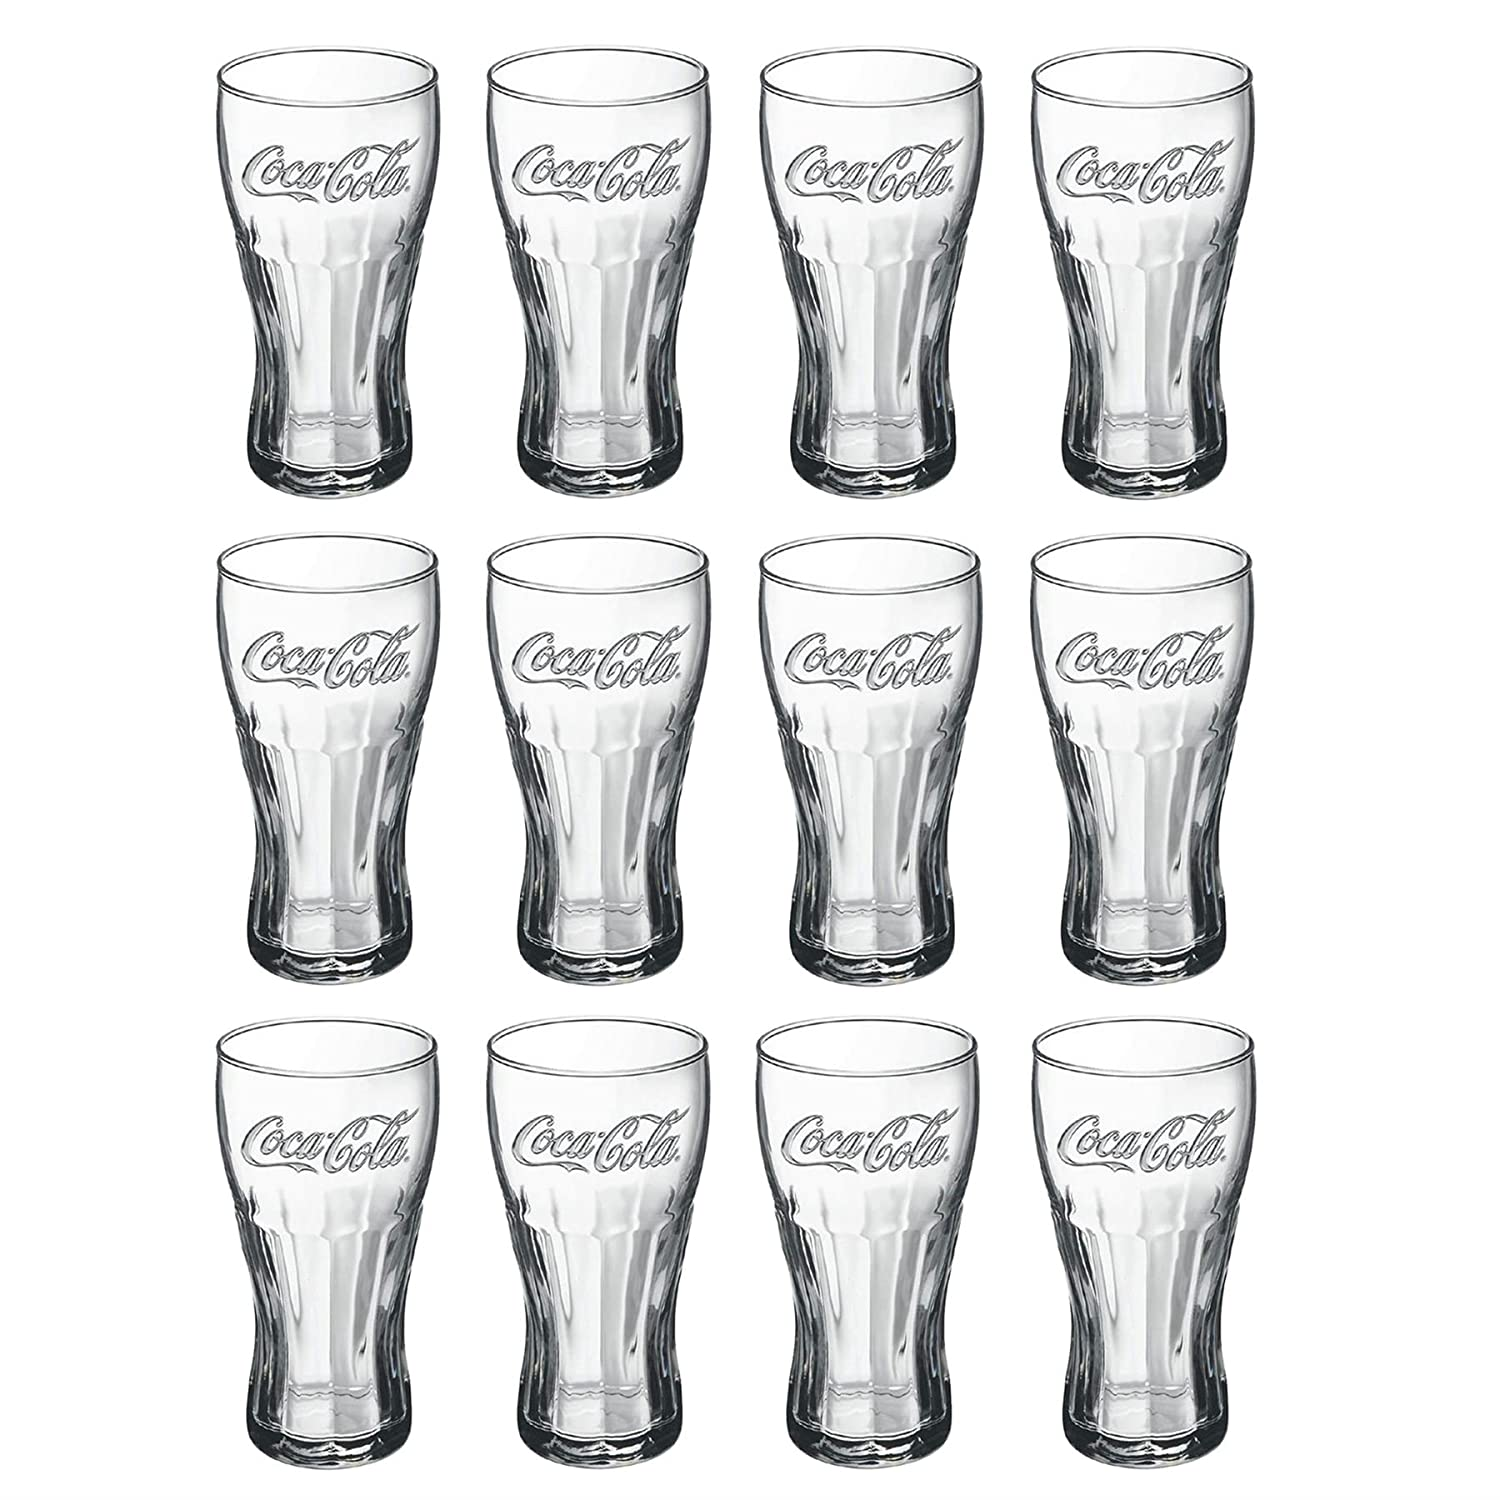 4 x Coca Cola Glass Tumbler Set Clear Transparent 40cl / 400ml / 14oz Official Coca Cola Glass Tumbler (Set of 4 Glasses) Coca Cola®